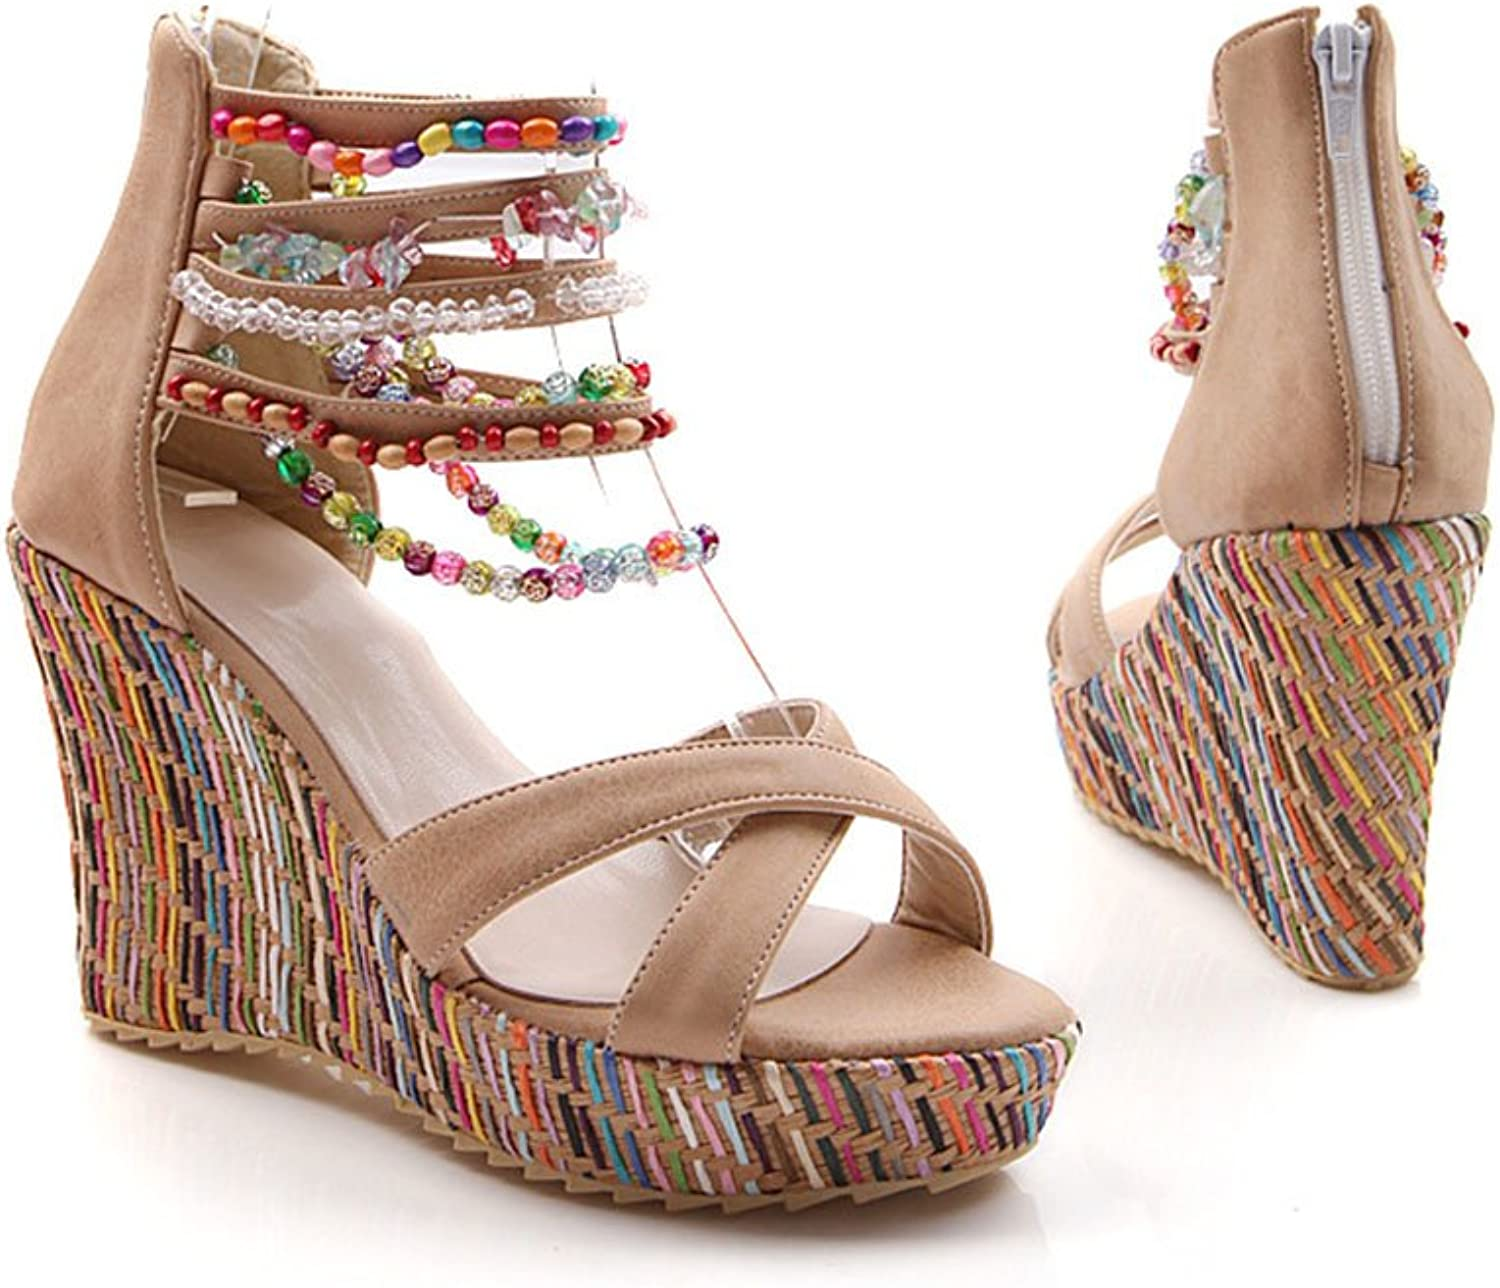 Women's Fashion Wedge Sandals Pearls Across The Top Platform High Heels Open toe Sandals